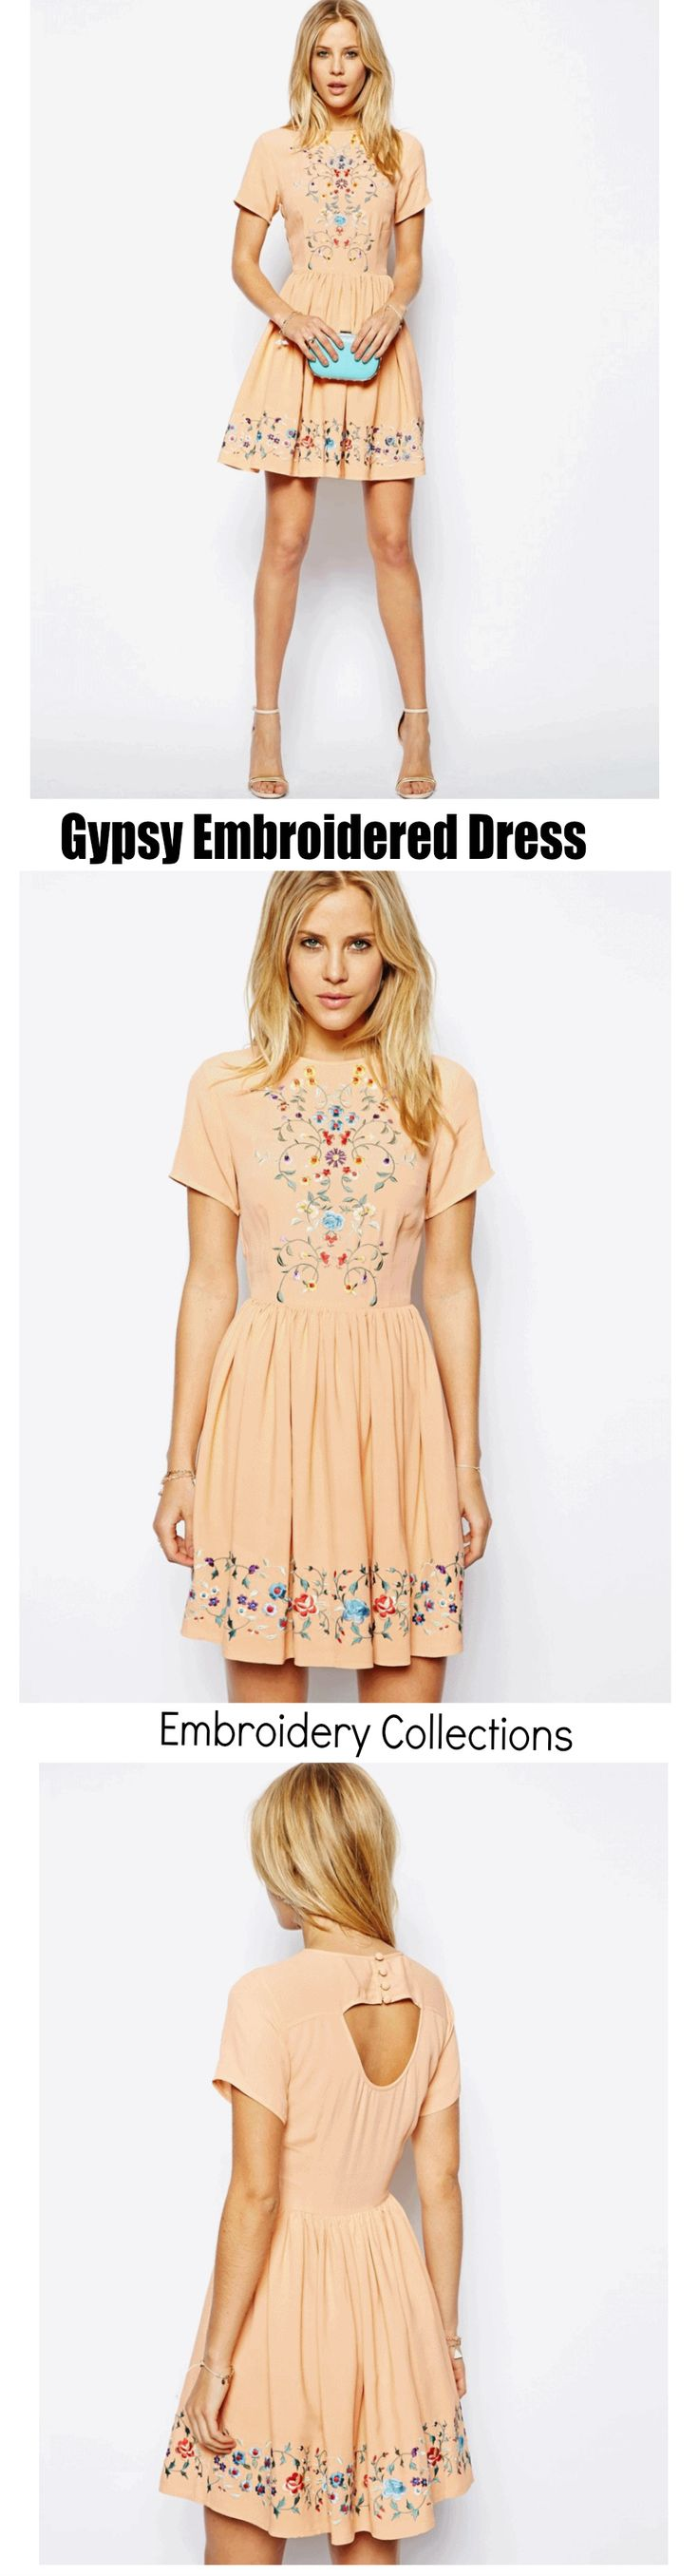 $45 ( Free Shipping Worldwide ) - Gypsy Embroidered Dress is Available at Pasaboho